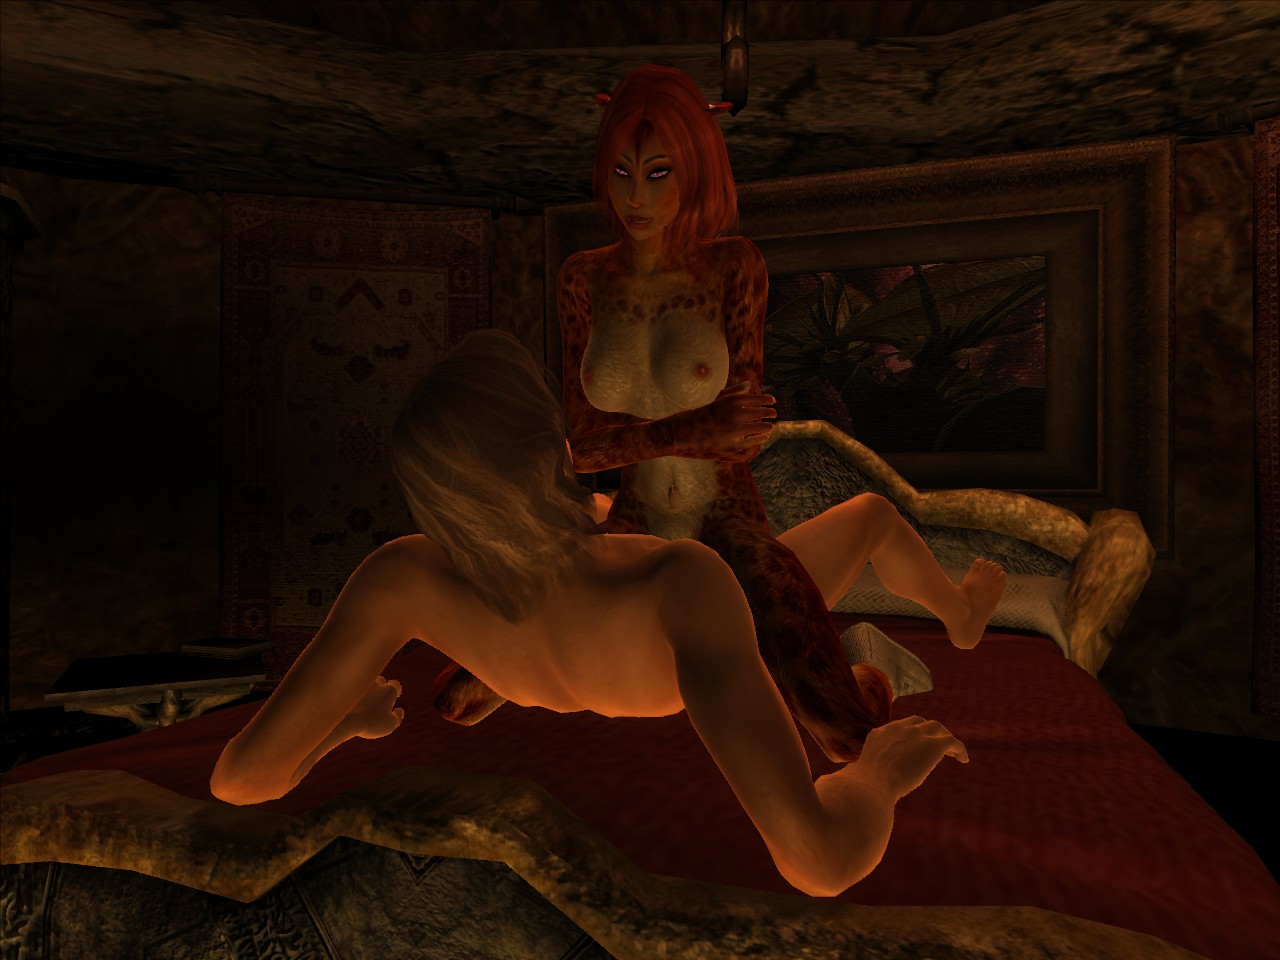 Khajiit rule 34 adult photos